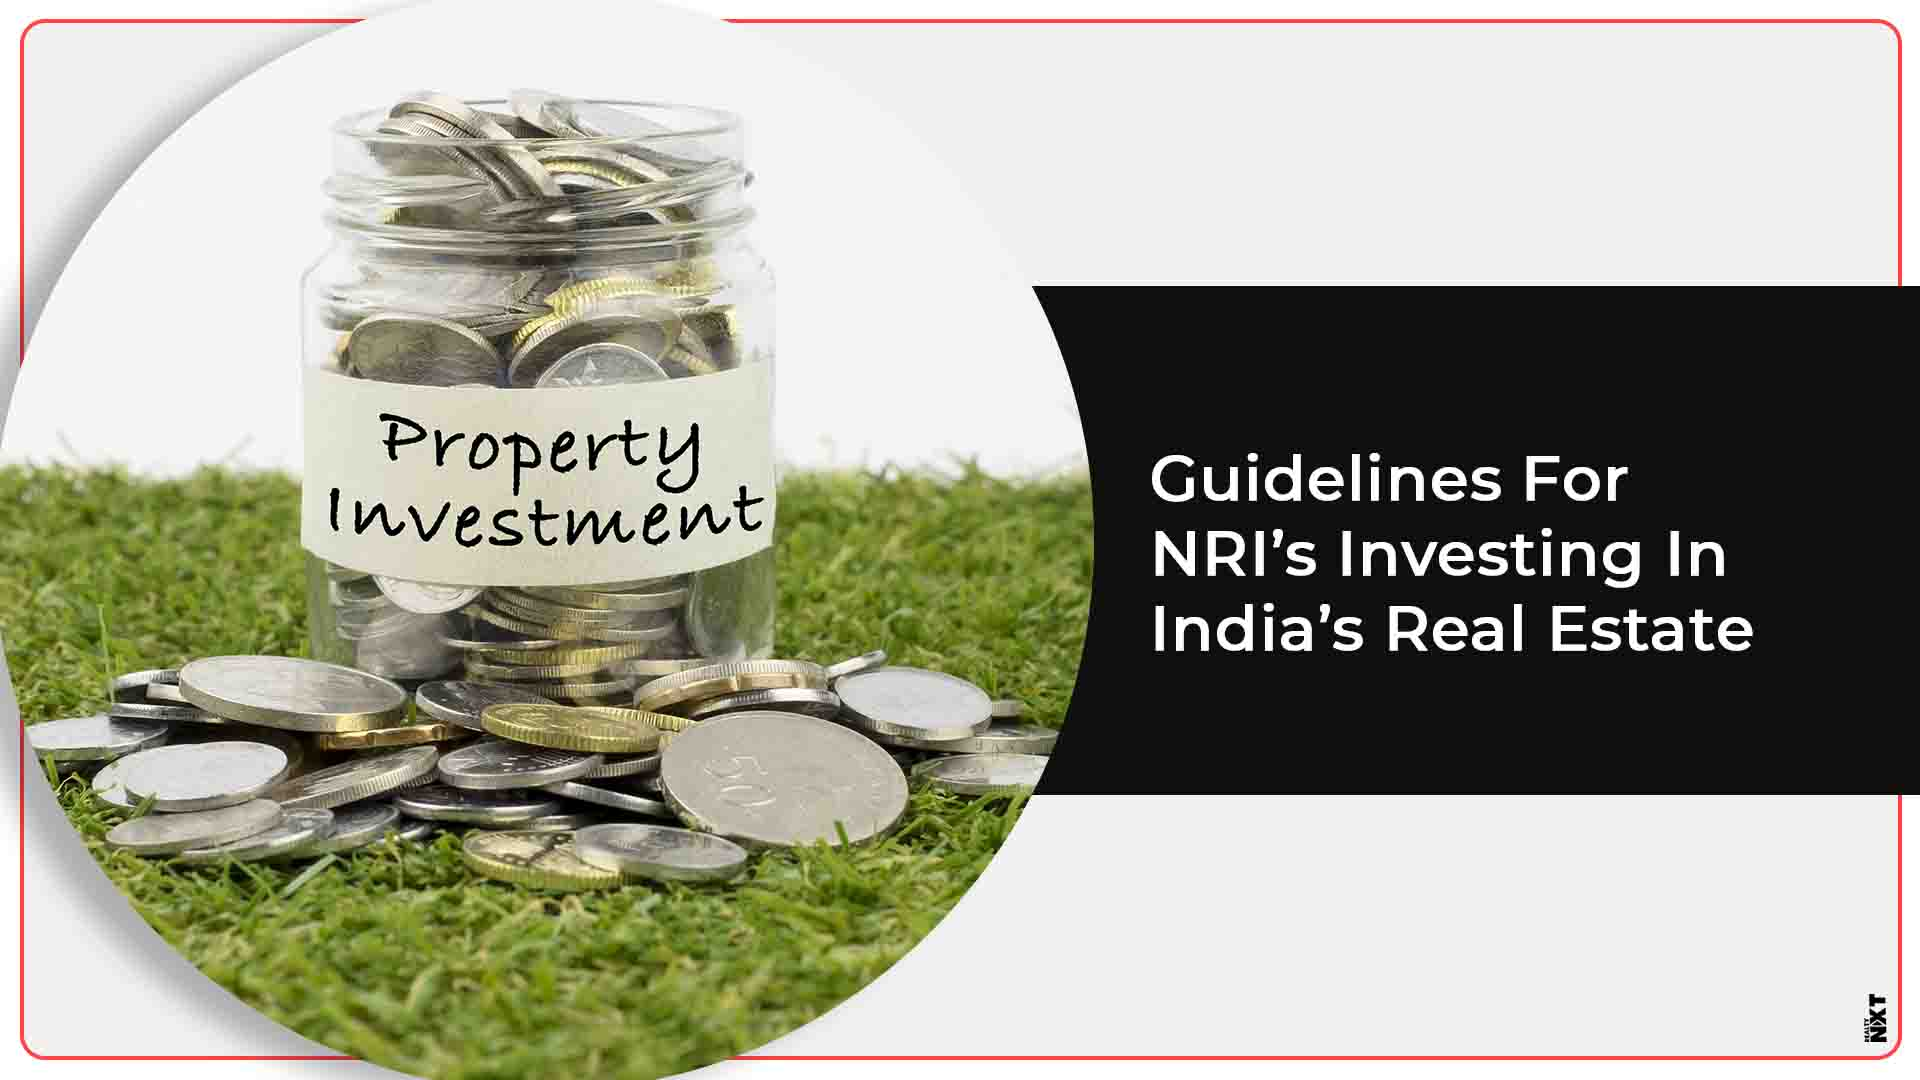 Tips For NRIs Who Wish To Buy Property In India | RealtyNXT